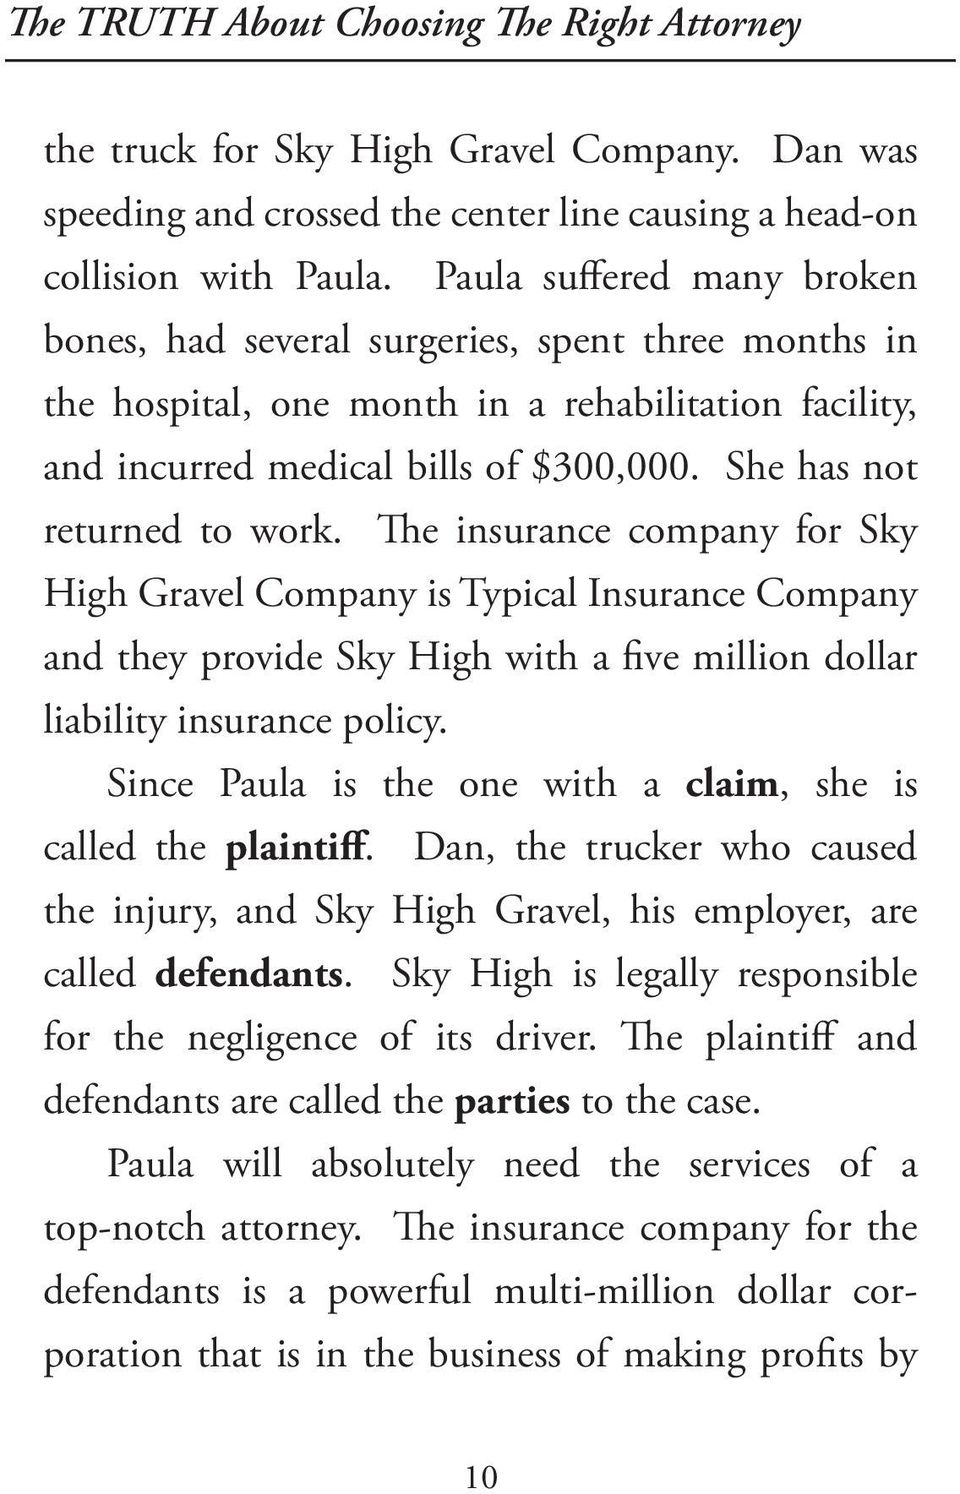 She has not returned to work. The insurance company for Sky High Gravel Company is Typical Insurance Company and they provide Sky High with a five million dollar liability insurance policy.